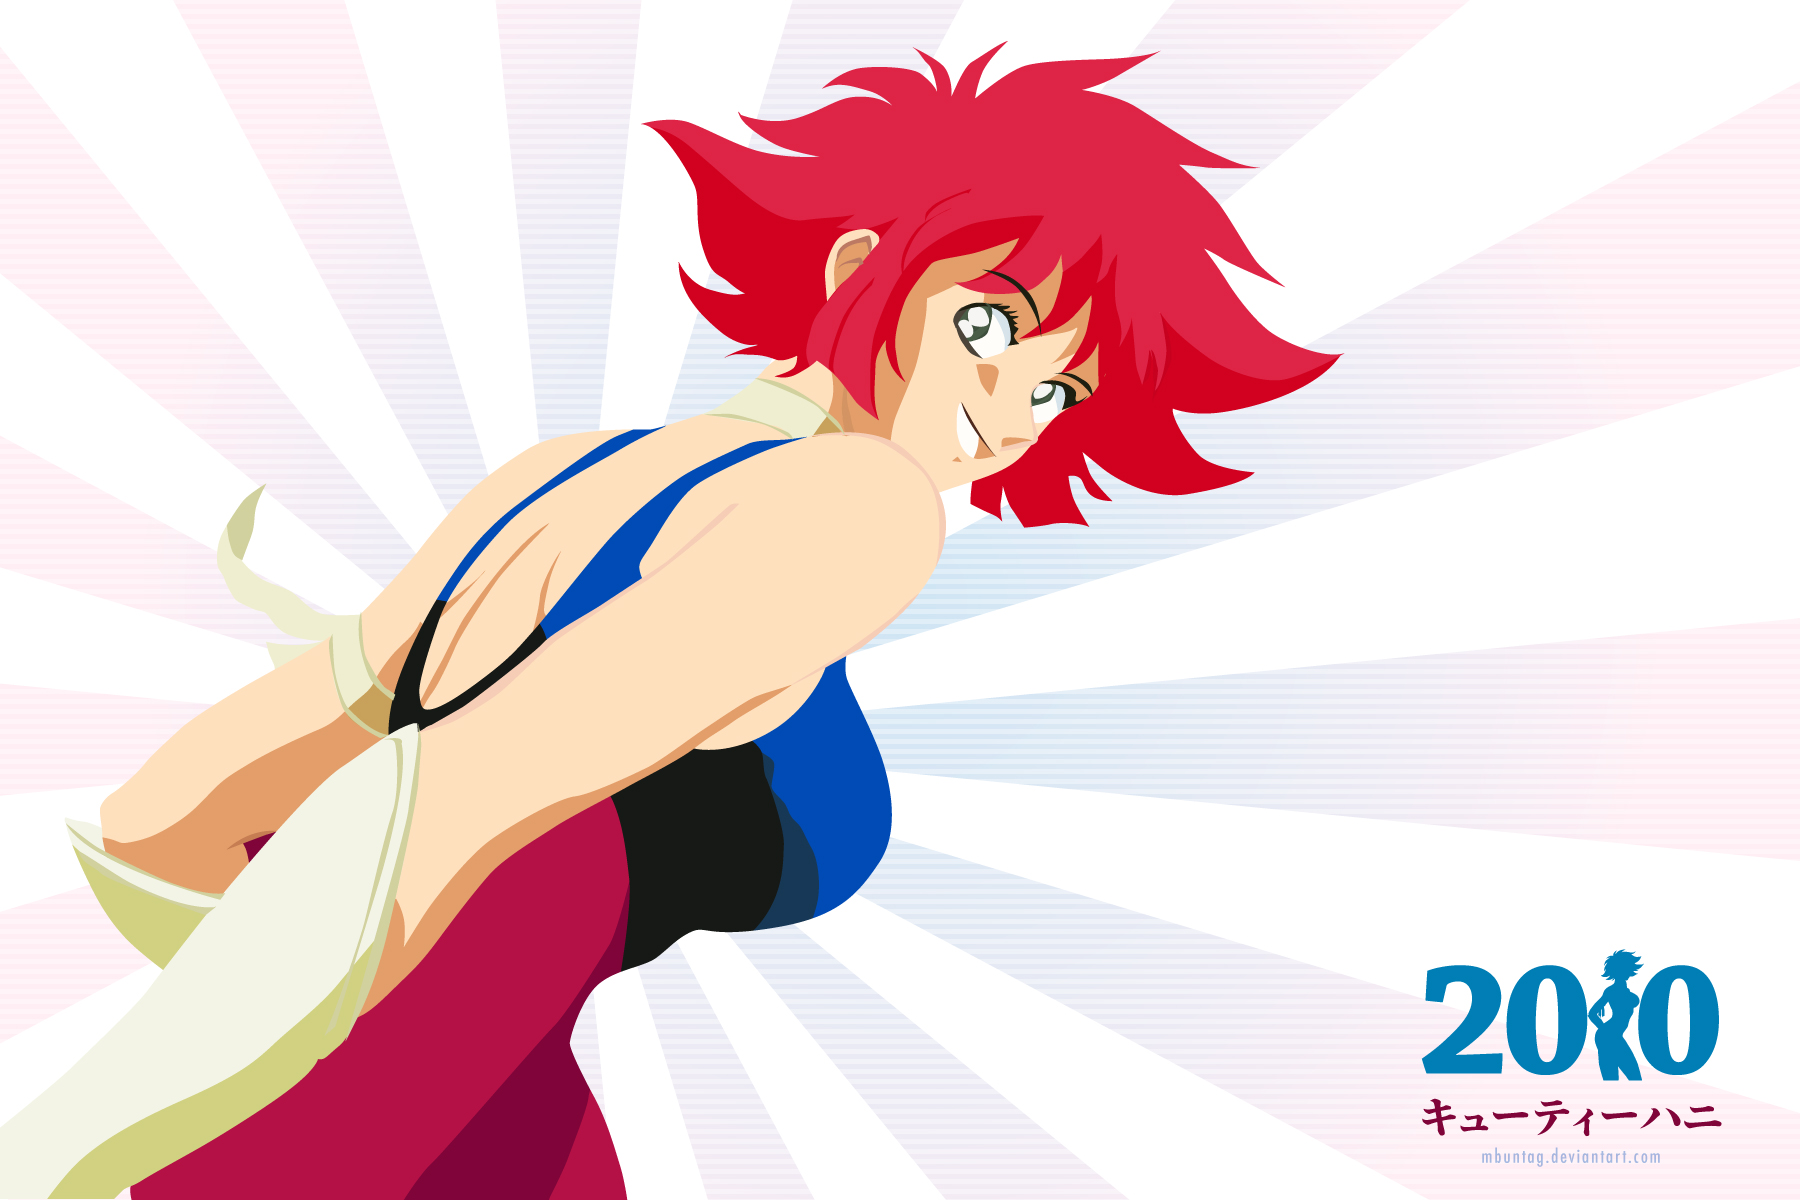 New Super Android Cutey Honey or New Cutey Honey anime Wallpaper 4 The Queen of Fan Service. Honey Flash!